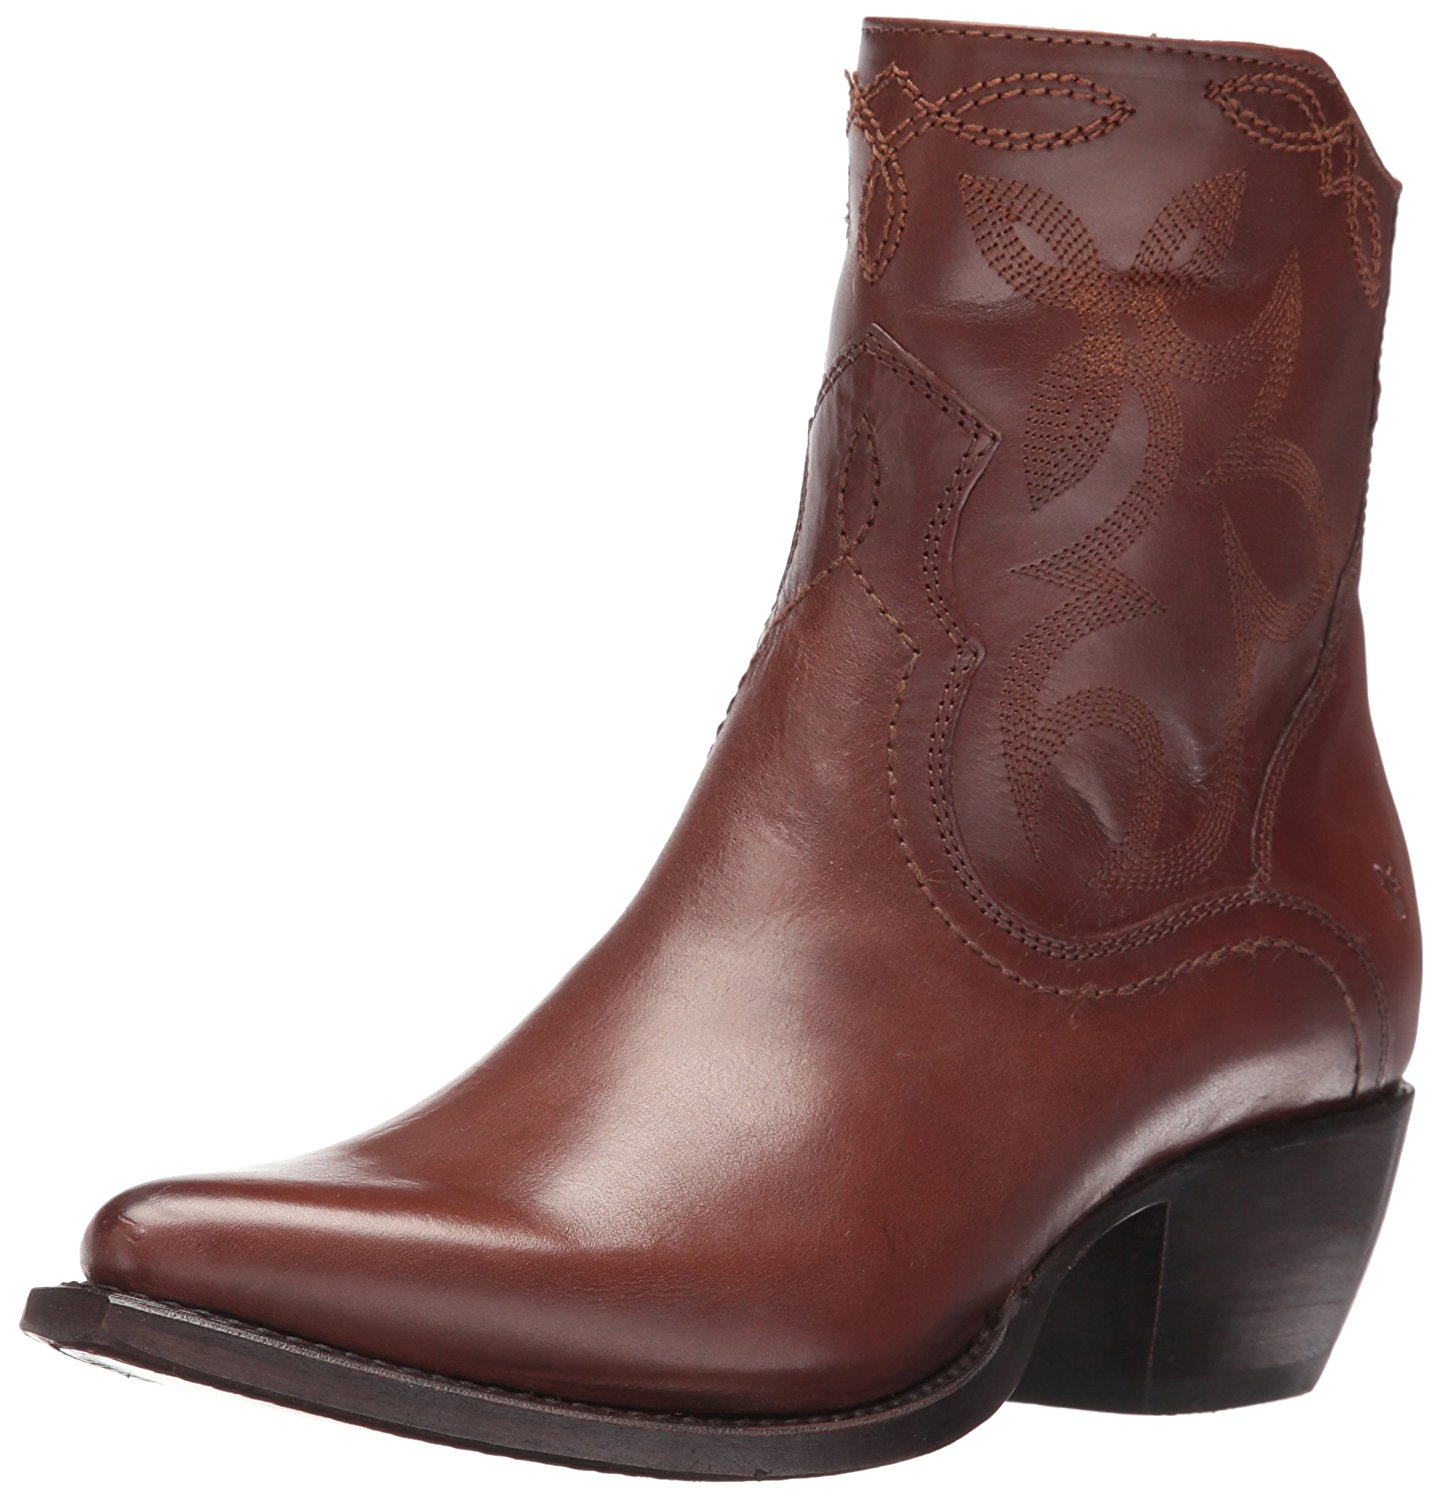 FRYE Womens Shane Leather Pointed Toe Mid-Calf Cowboy Boots Whiskey Size 7.0 Z